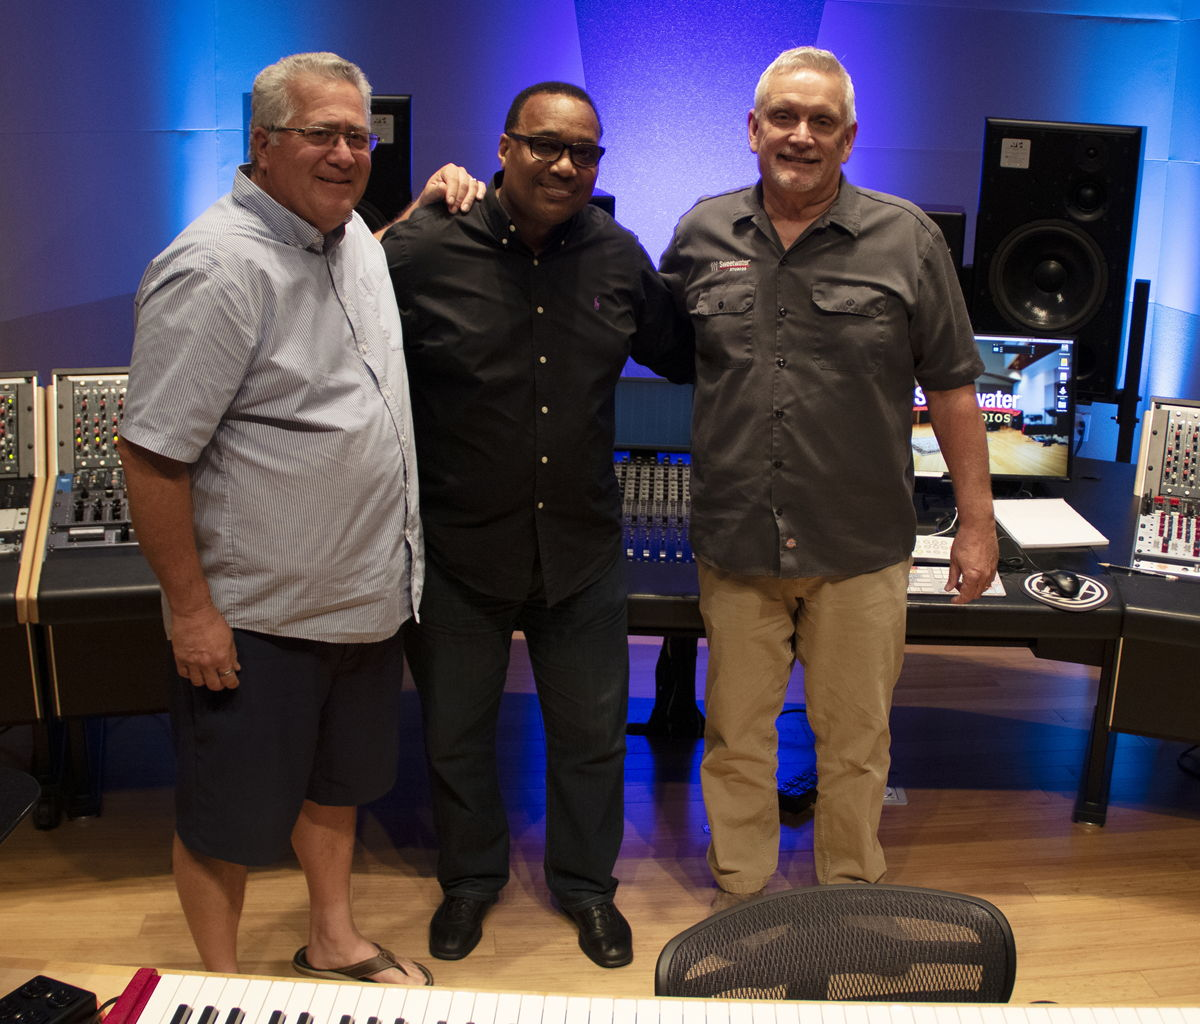 Kevin Wood, Michael McCowin, and Sweetwater Studios Producer/Keyboardist Phil Naish - Photo by Aaron Steele